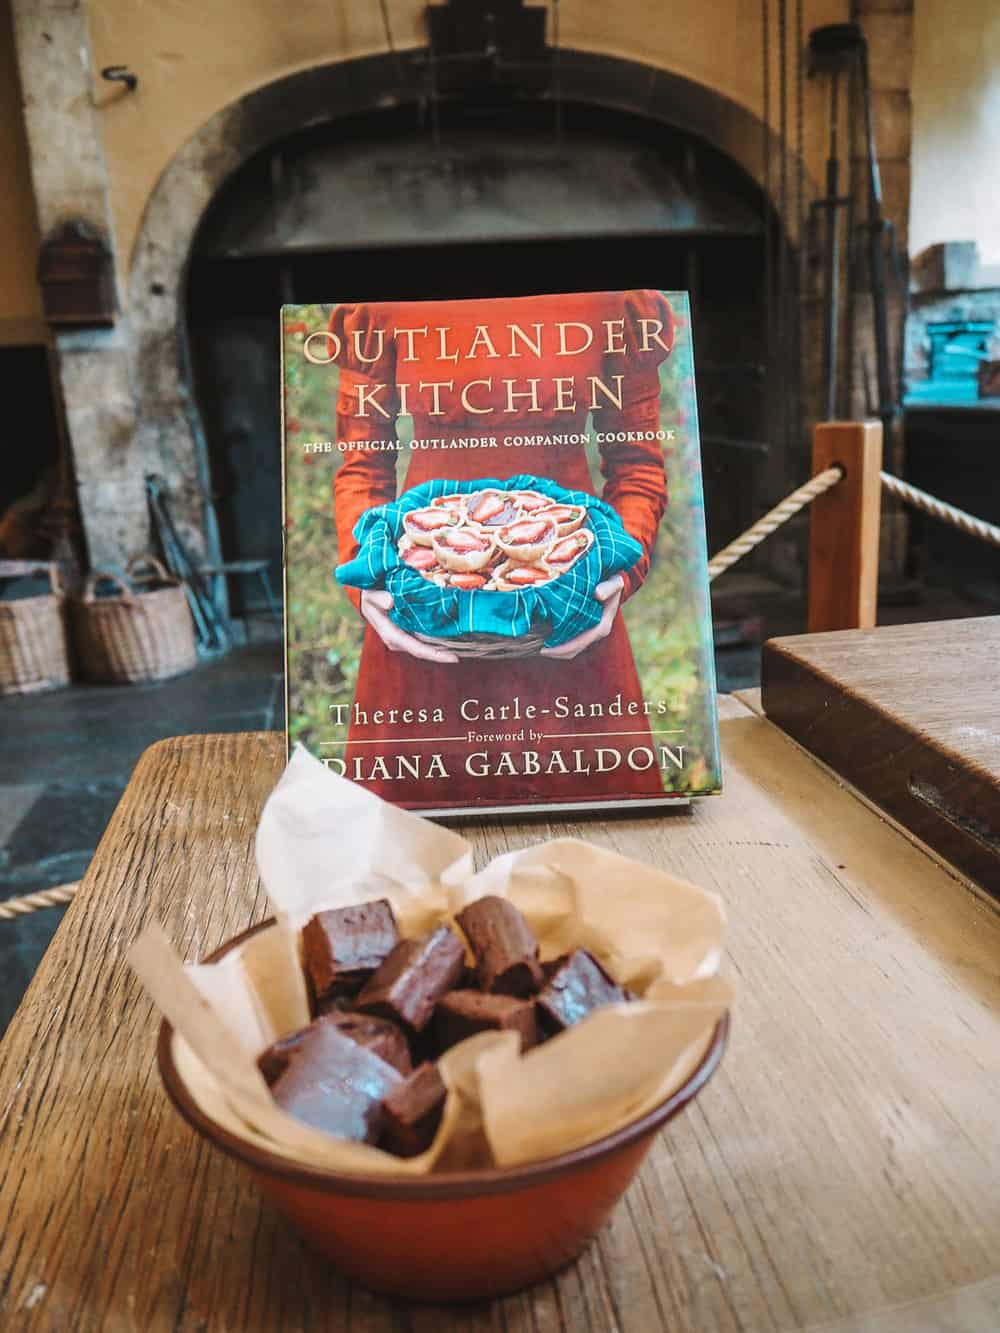 Black Jack Randall's Dark Chocolate Lavender fudge from the Outlander Kitchen cookbook…delicious!